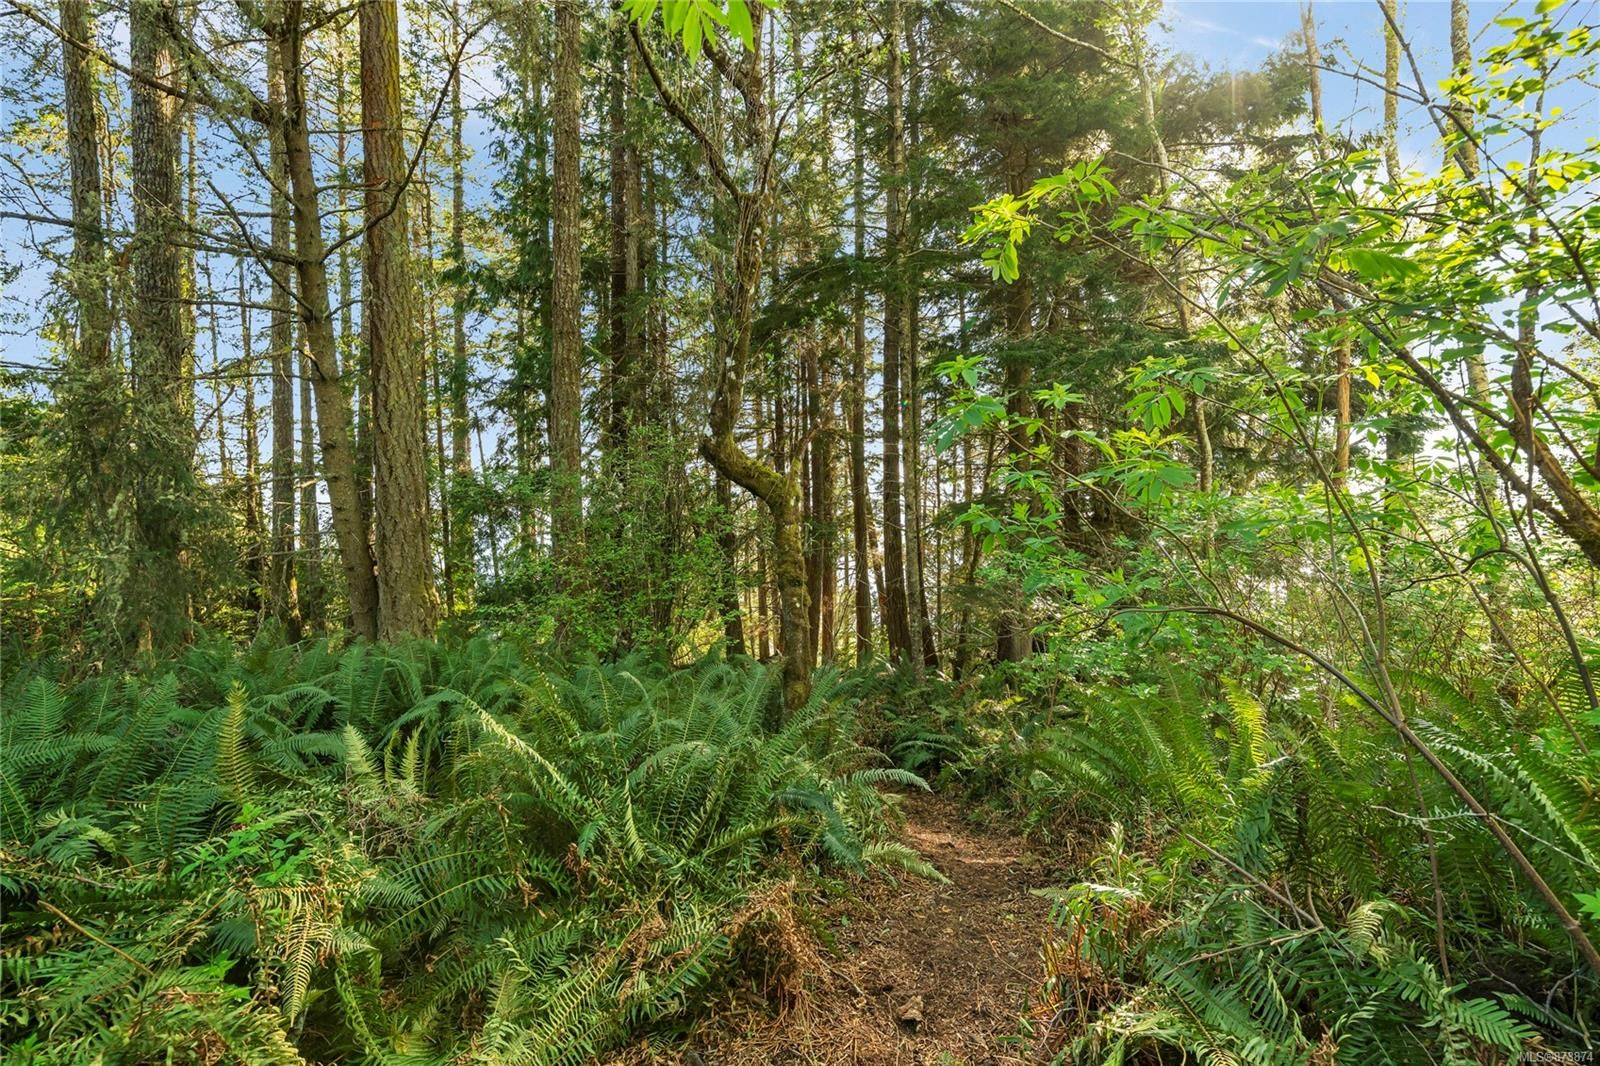 Main Photo: 2550 Seaside Dr in : Sk French Beach Land for sale (Sooke)  : MLS®# 873874